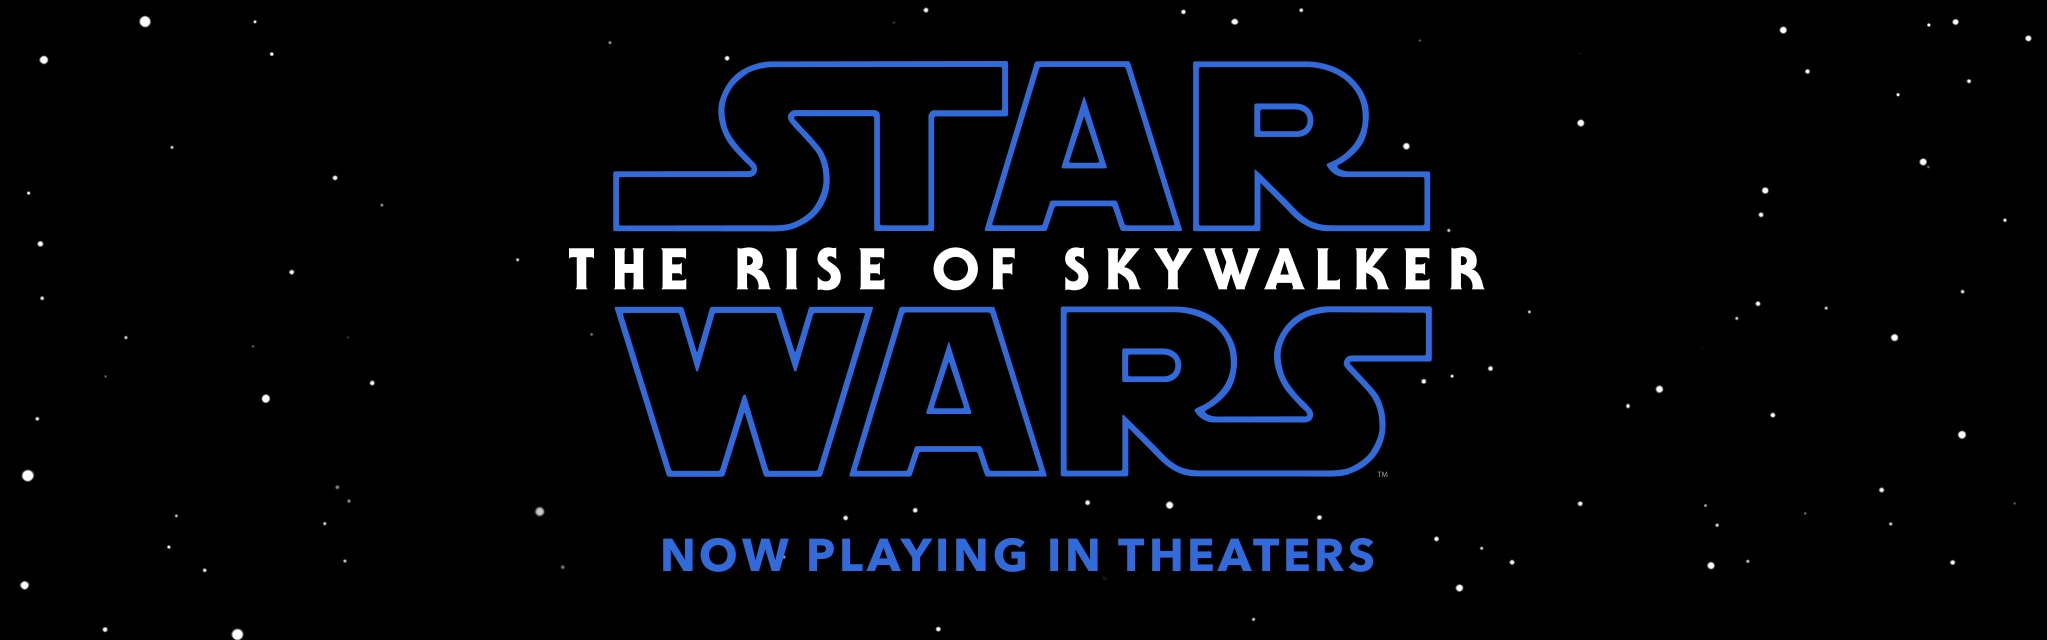 Star Wars: The Rise of Skywalker. Now Playing in Theaters.